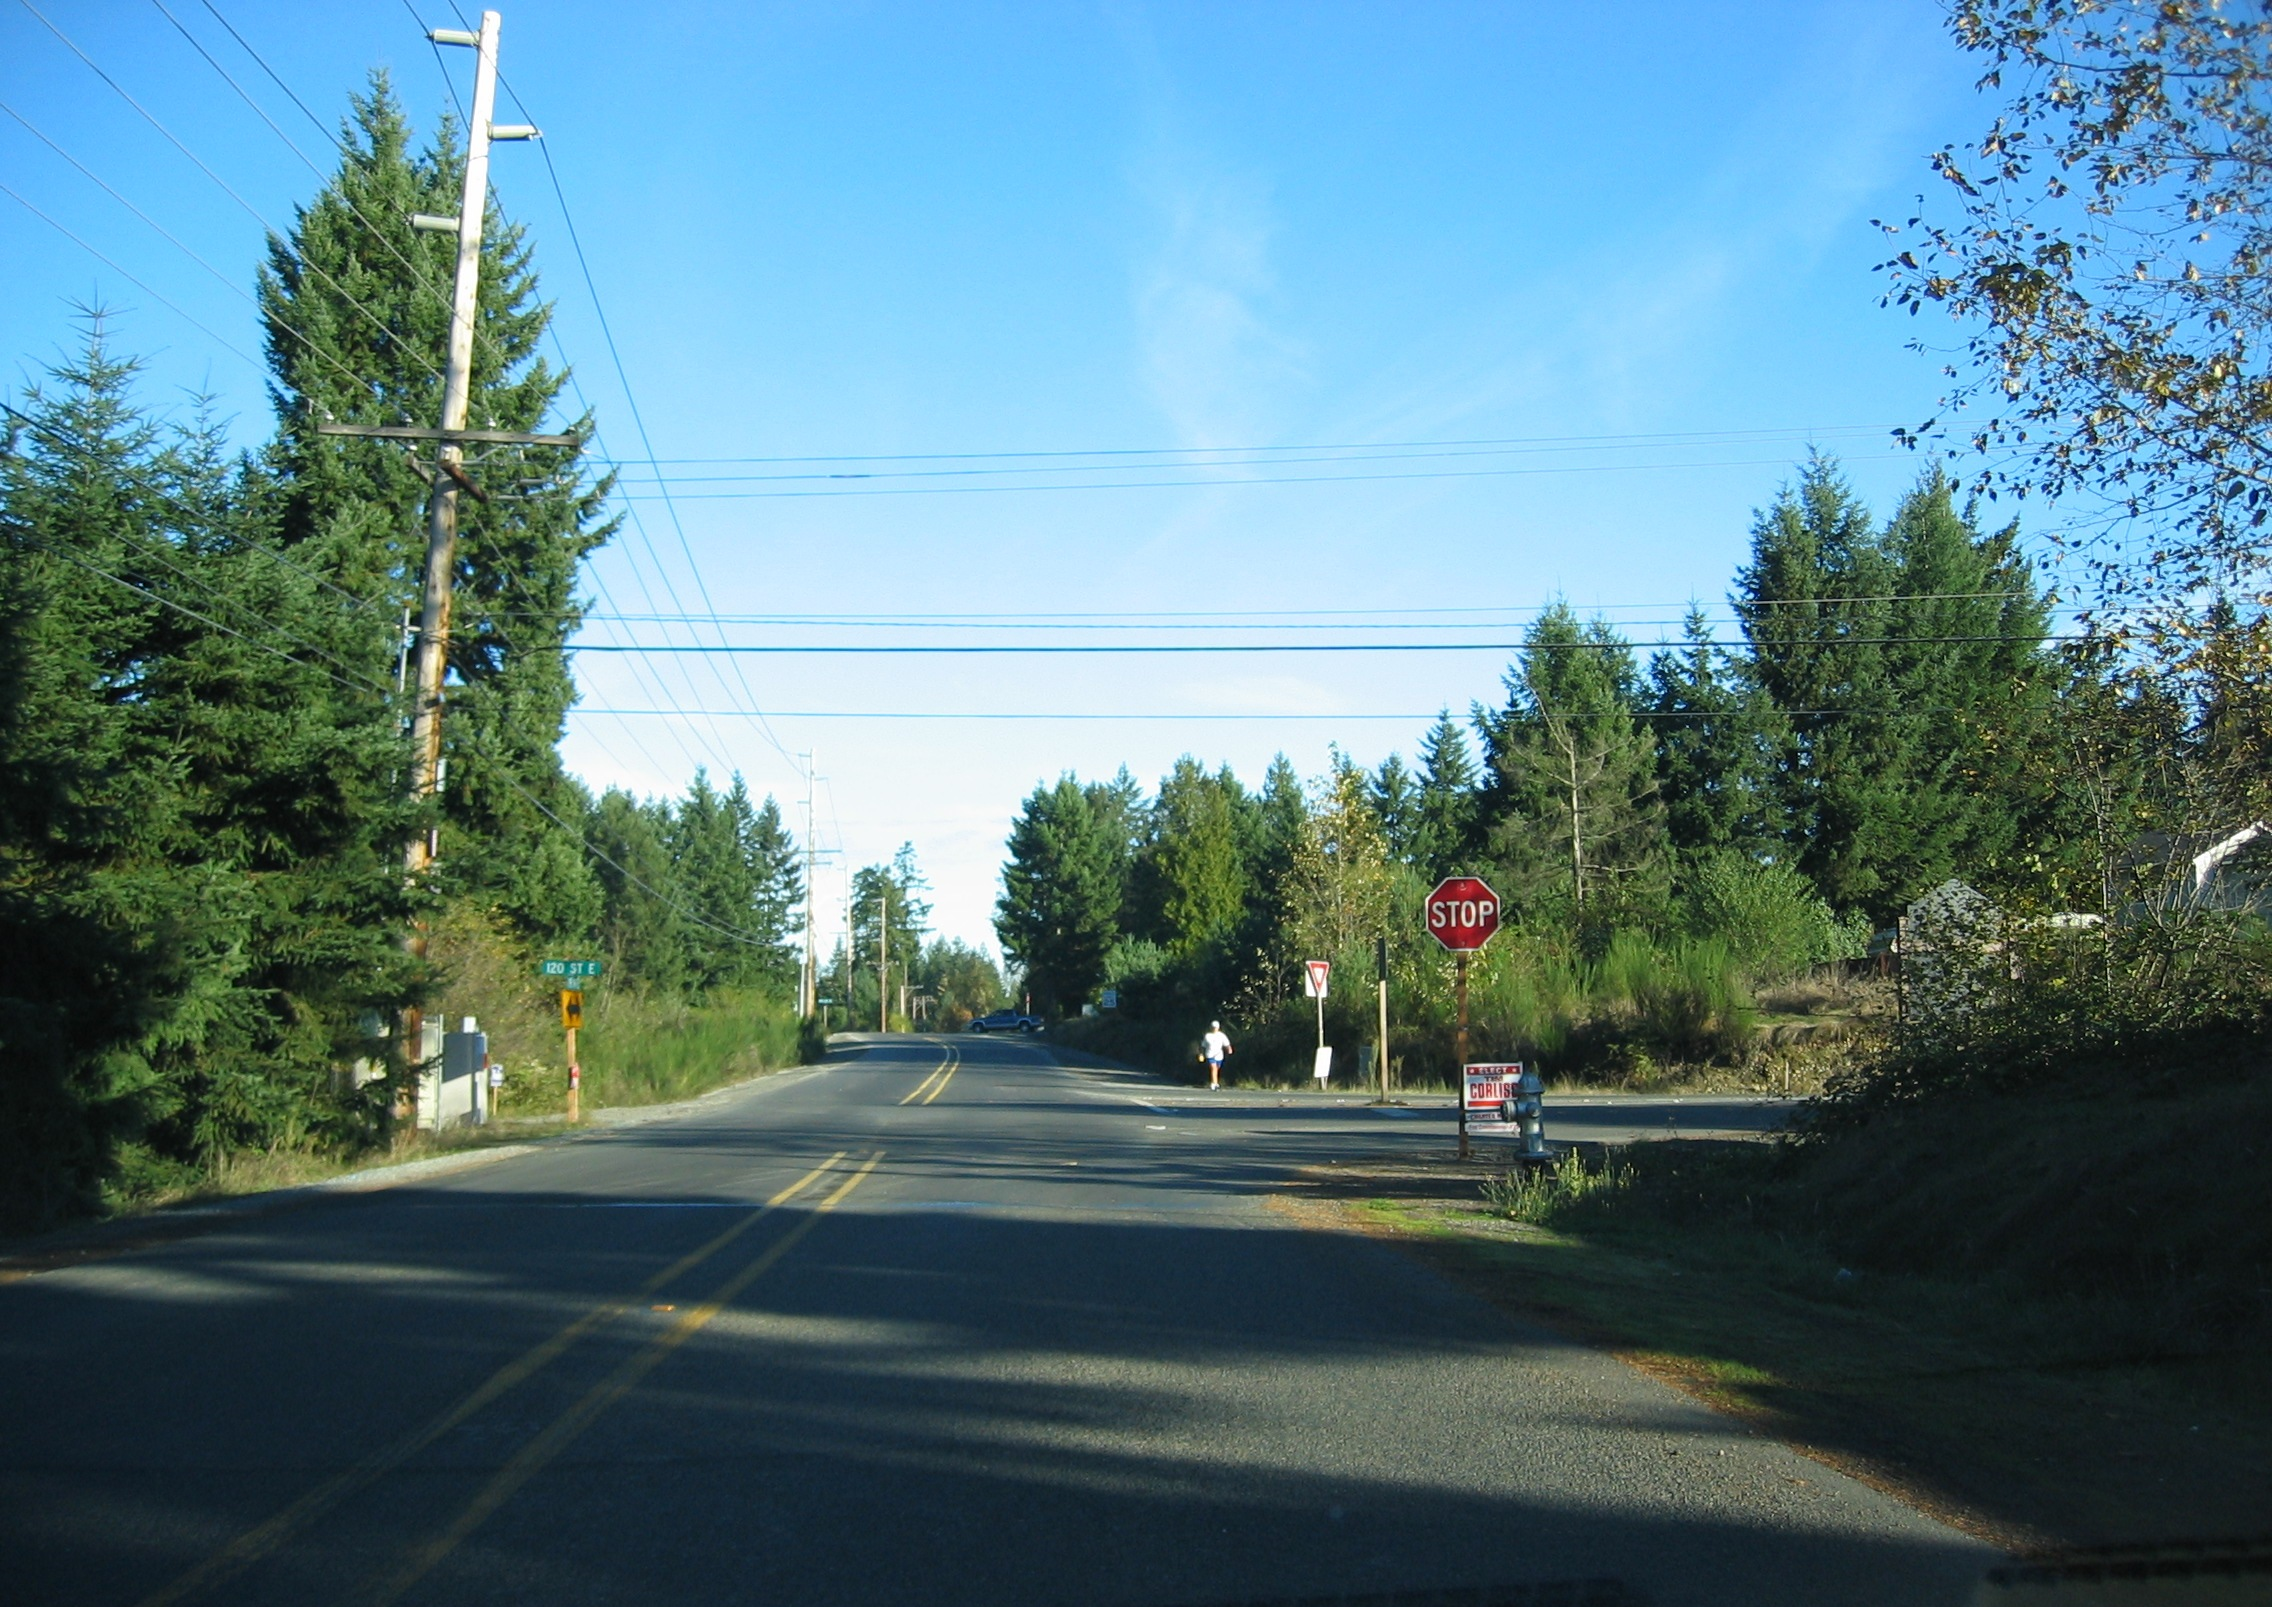 198th Ave E (120th St E to Rhodes Lake Rd)